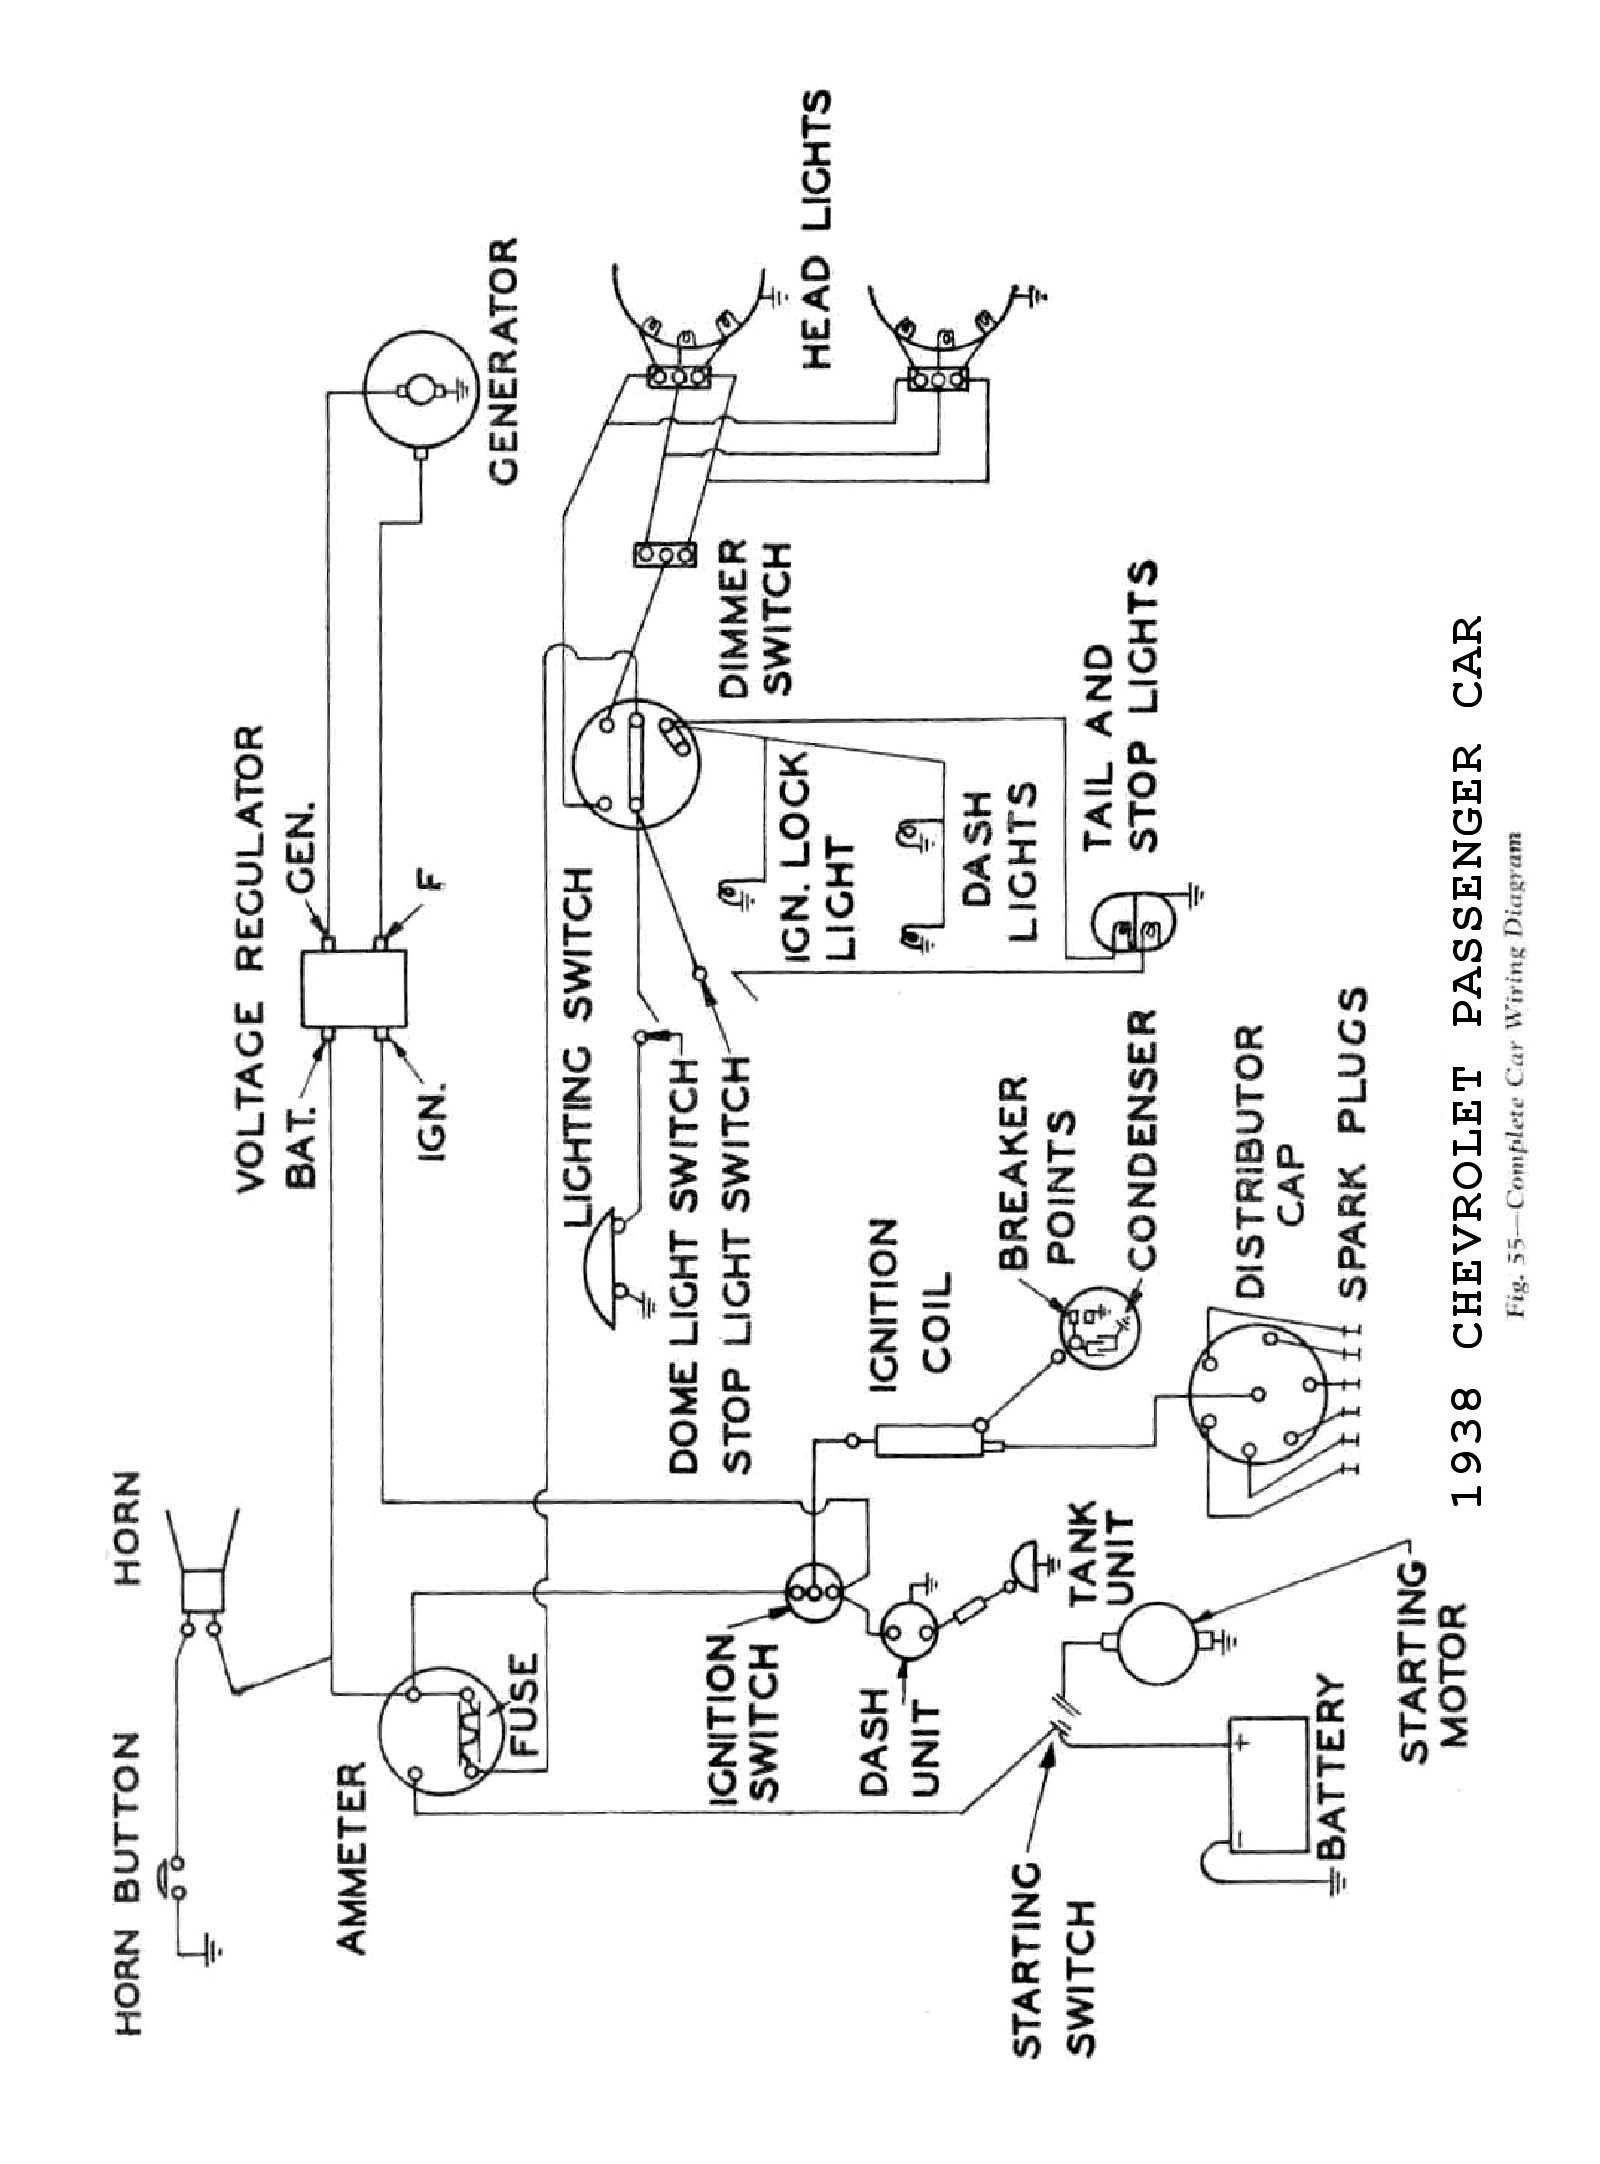 hight resolution of ignition circuit diagram for the 1955 nash 6 cylinder all models ignition circuit diagram for the 1948 54 hudson 6 cylinder